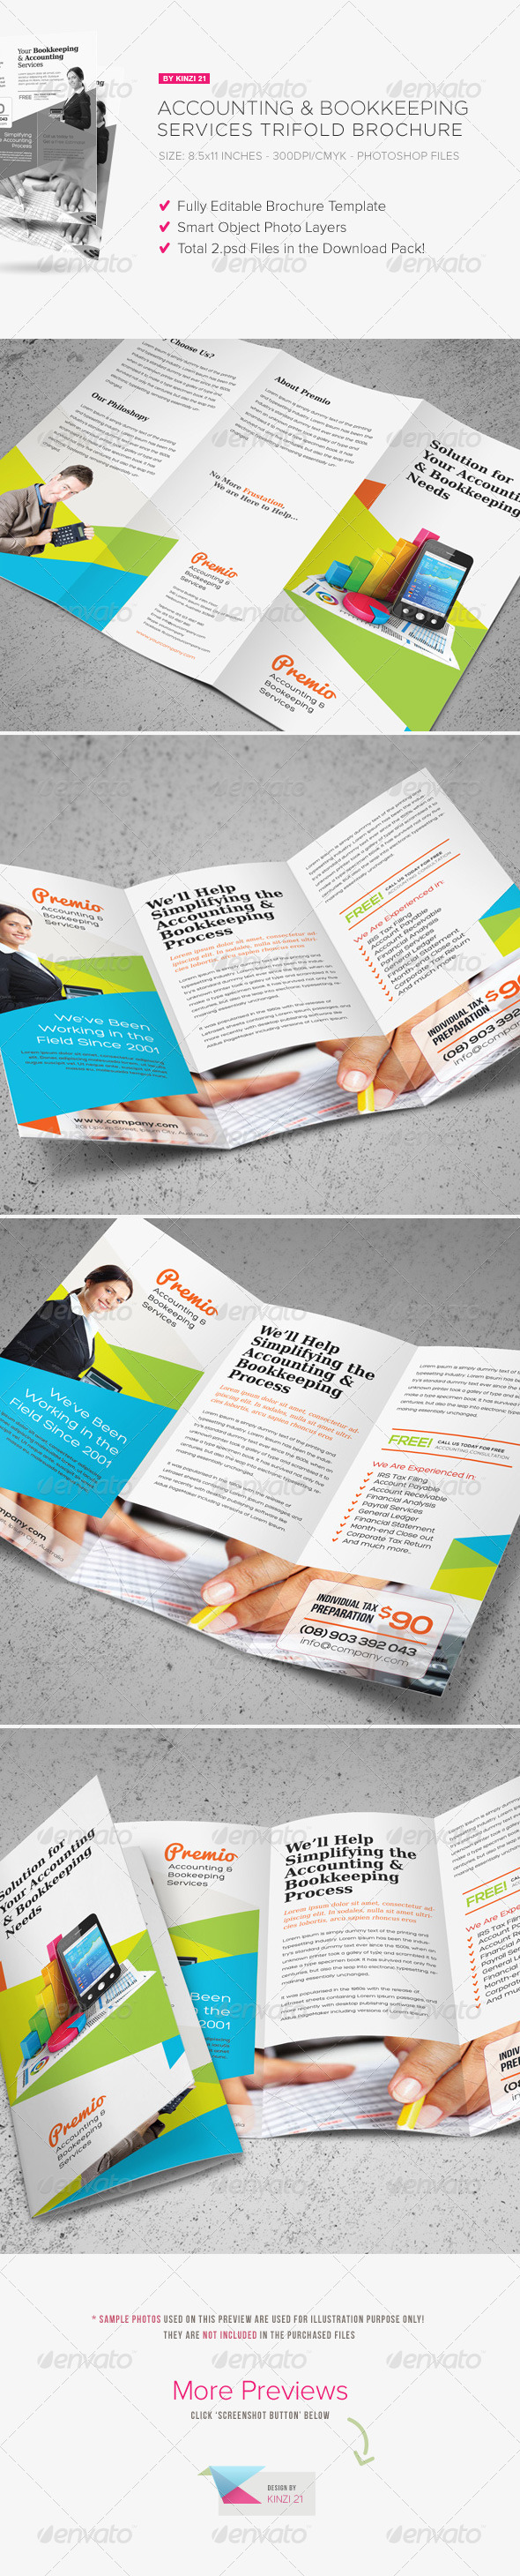 GraphicRiver Accounting & Bookkeeping Services Trifold Brochure 7258190